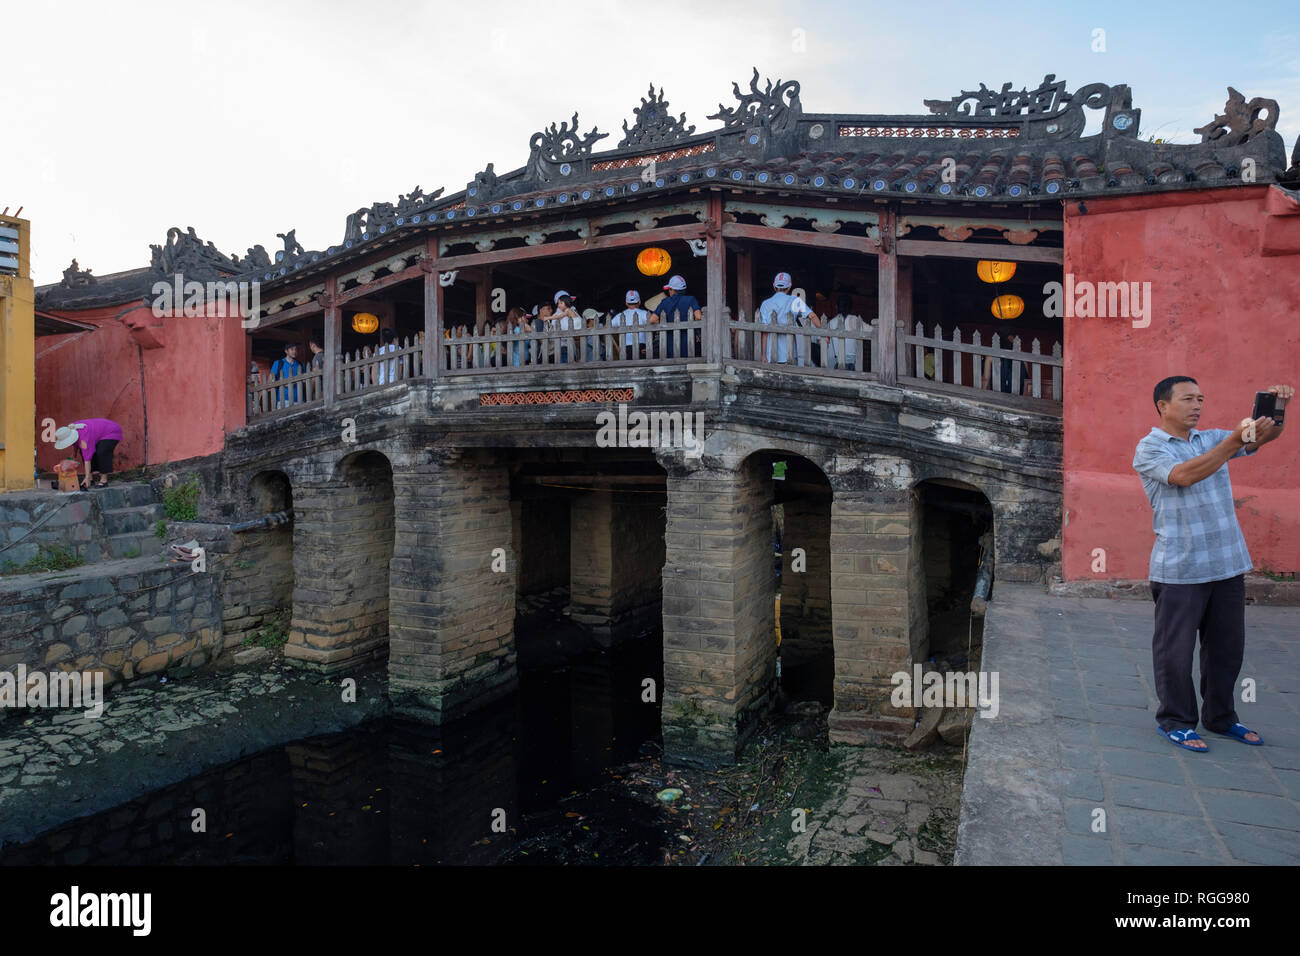 Tourist taking a selfie with his smartphone in front of the Japanese Covered Bridge aka Cau Chua Pagoda in Hoi An, Vietnam Stock Photo